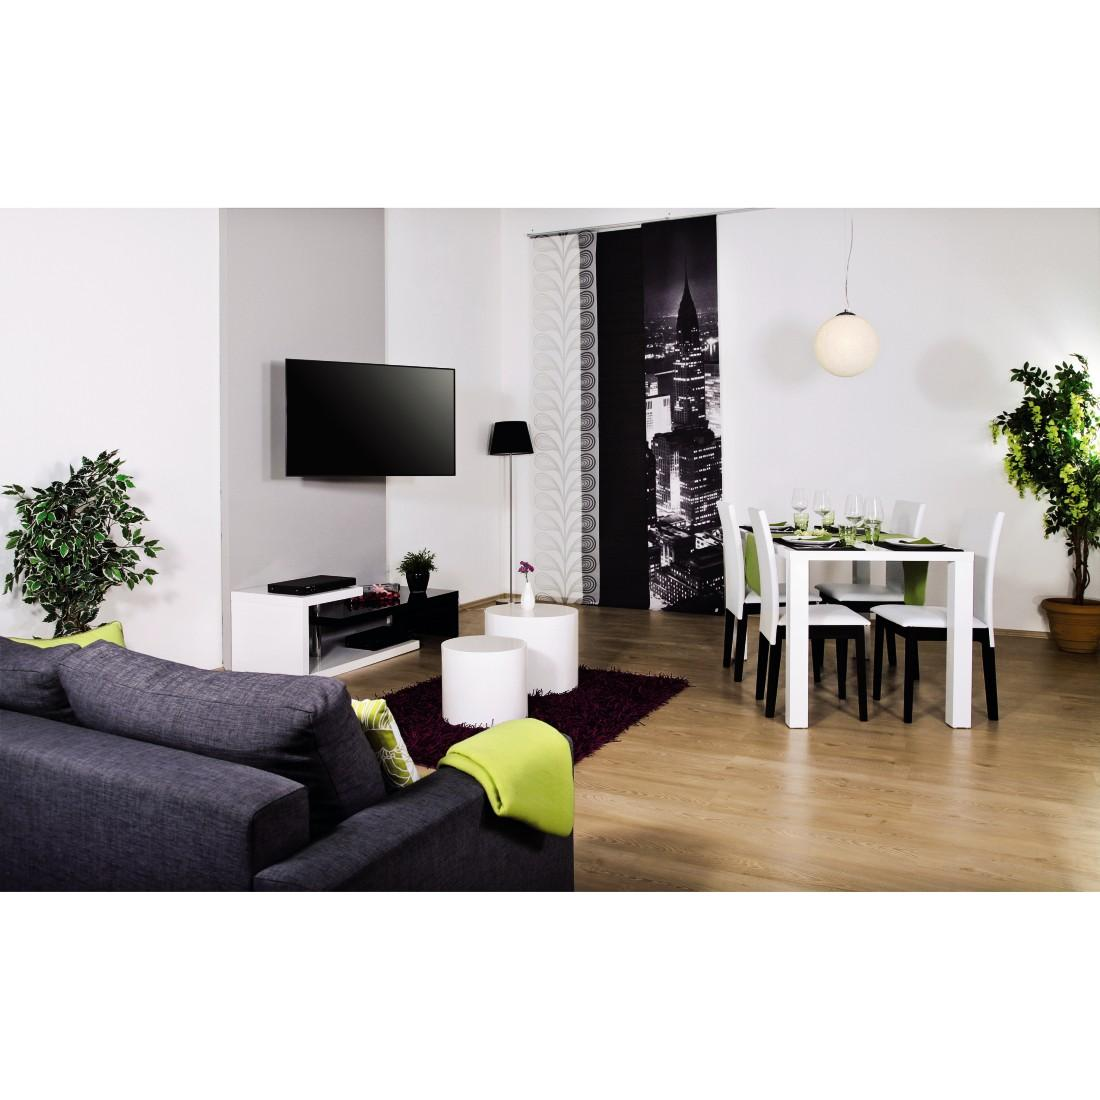 hama tv wandhalterung f r gro e fernseher bis 90 zoll 119 229cm vesa bis 800 x 600. Black Bedroom Furniture Sets. Home Design Ideas